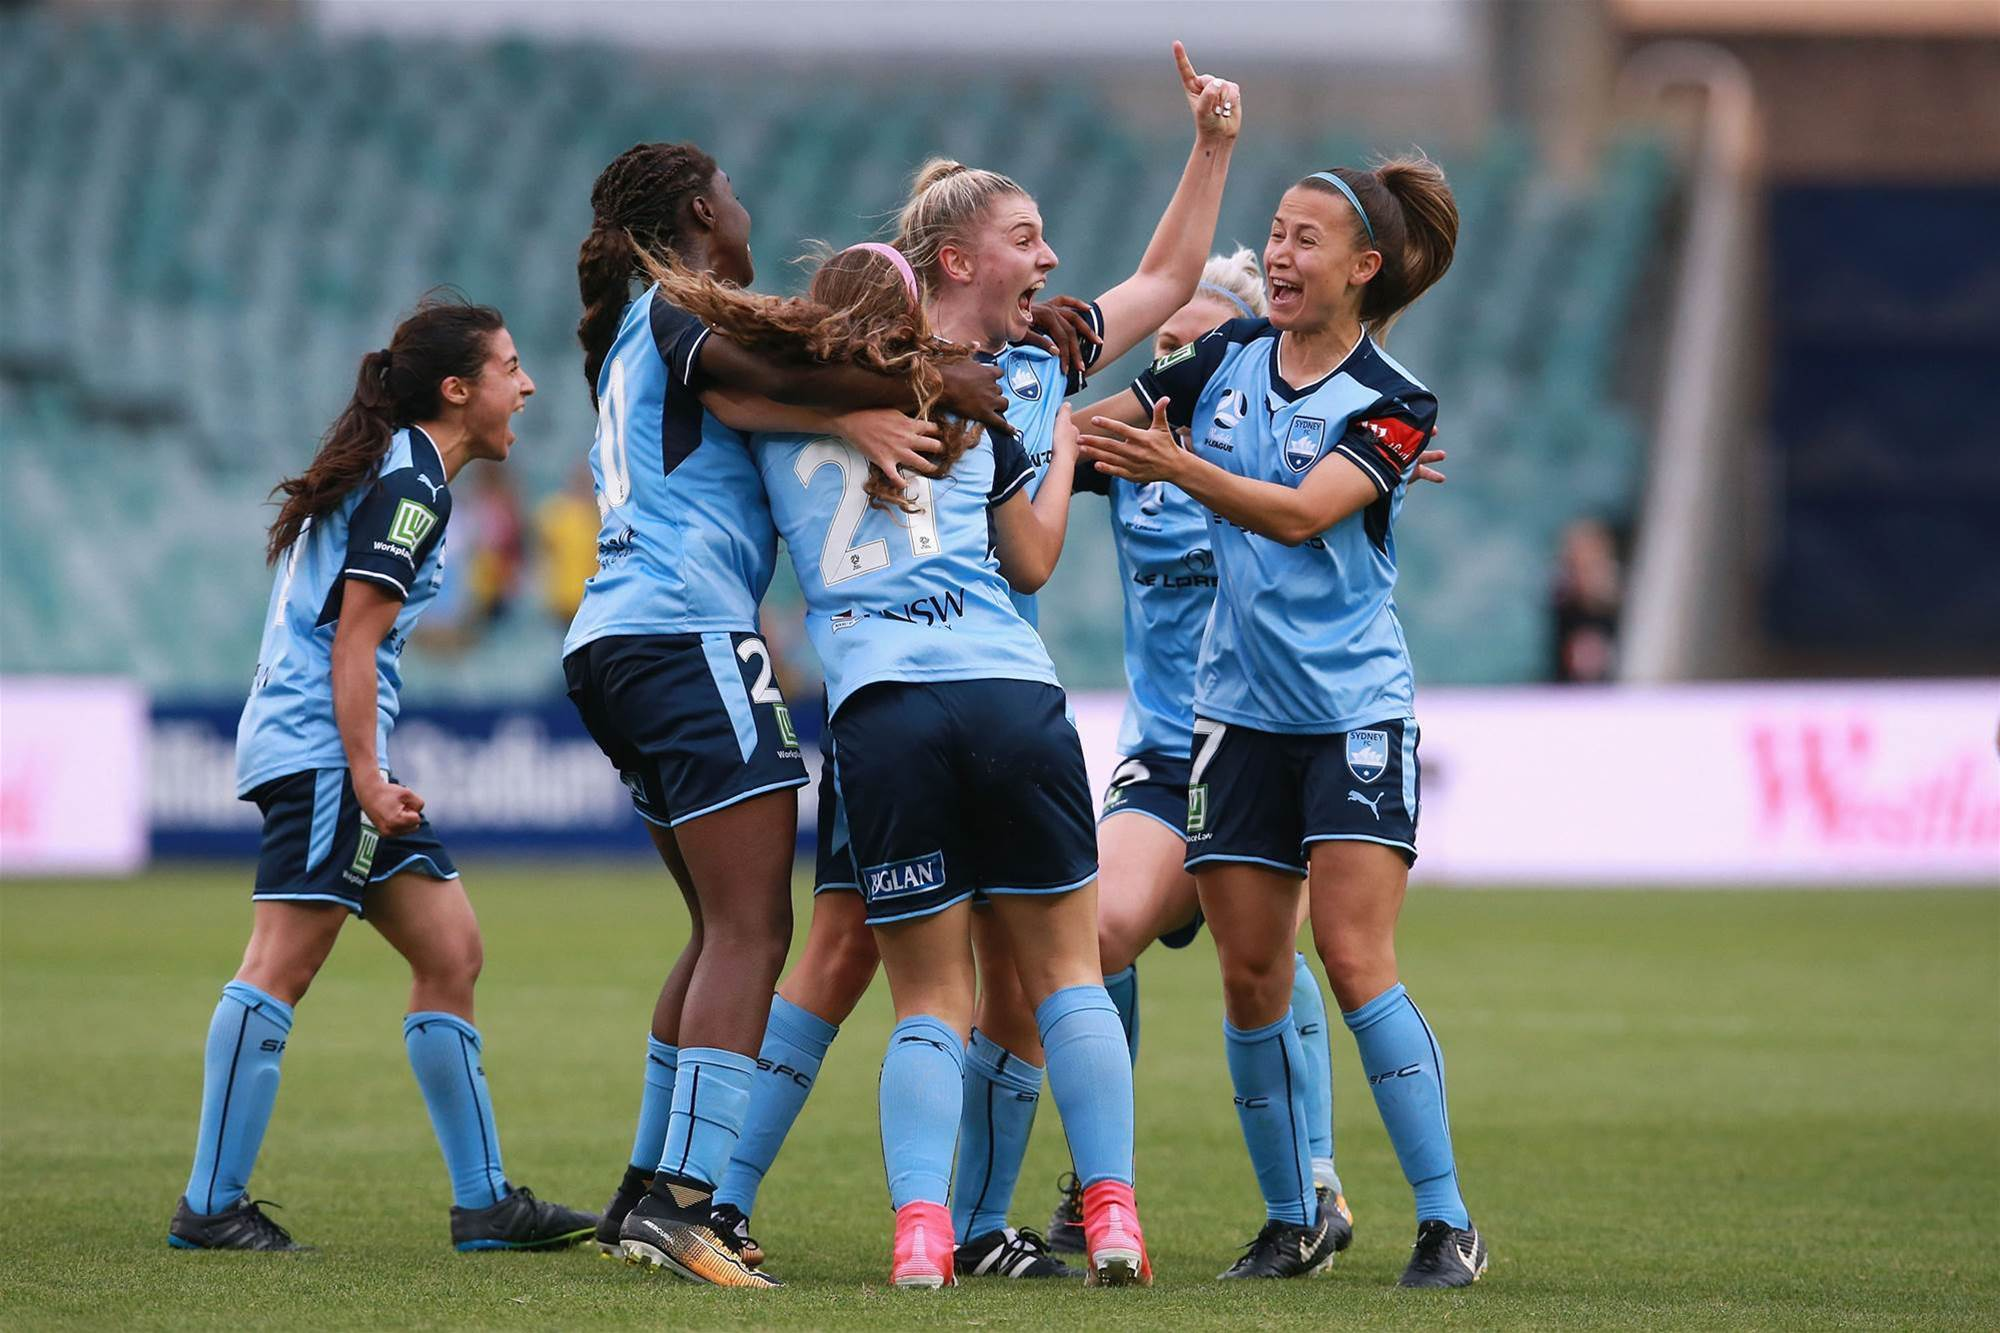 W-League Round 4 pic special - Sydney off the mark!